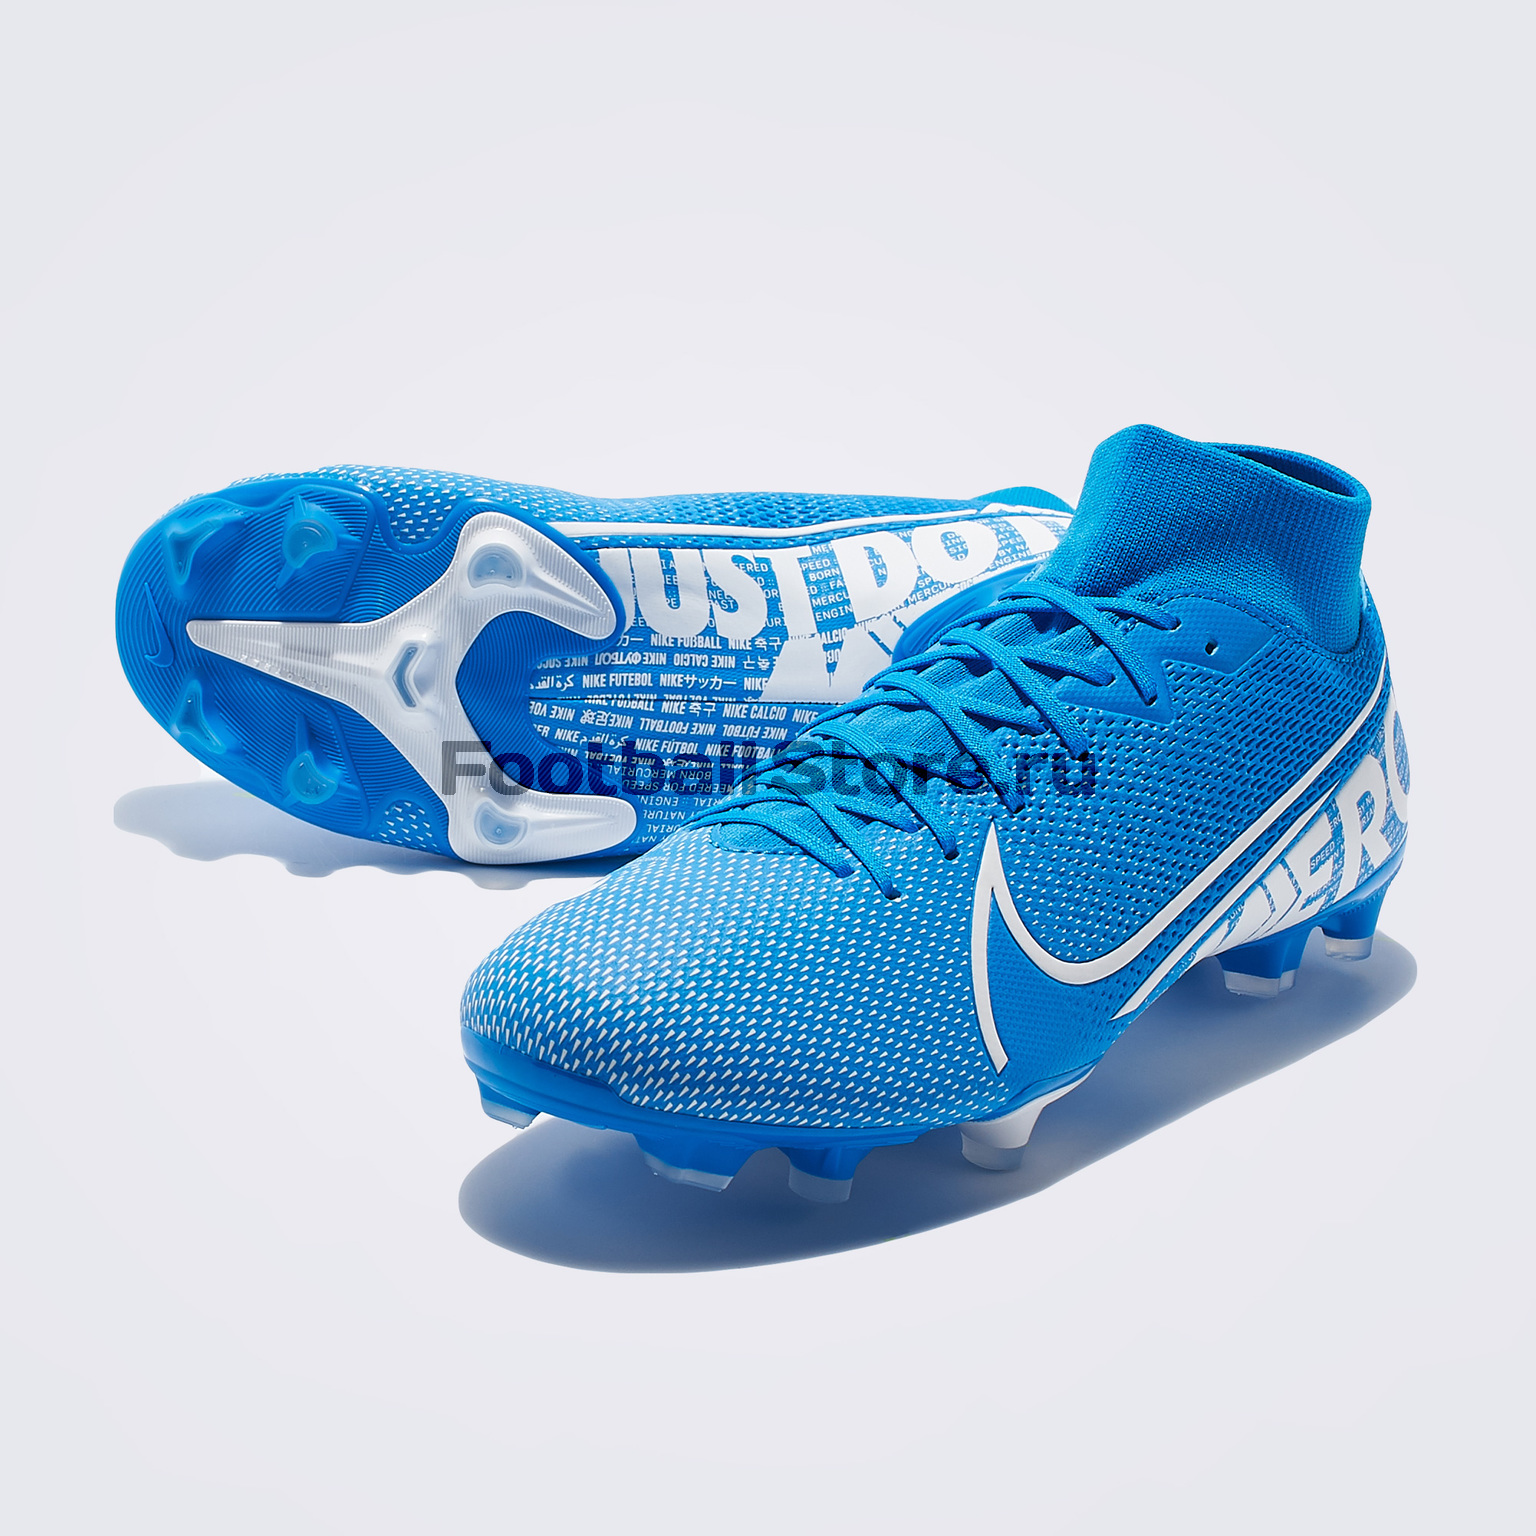 Фото - Бутсы Nike Superfly 7 Academy FG/MG AT7946-414 бутсы nike legend 7 academy fg ah7242 118